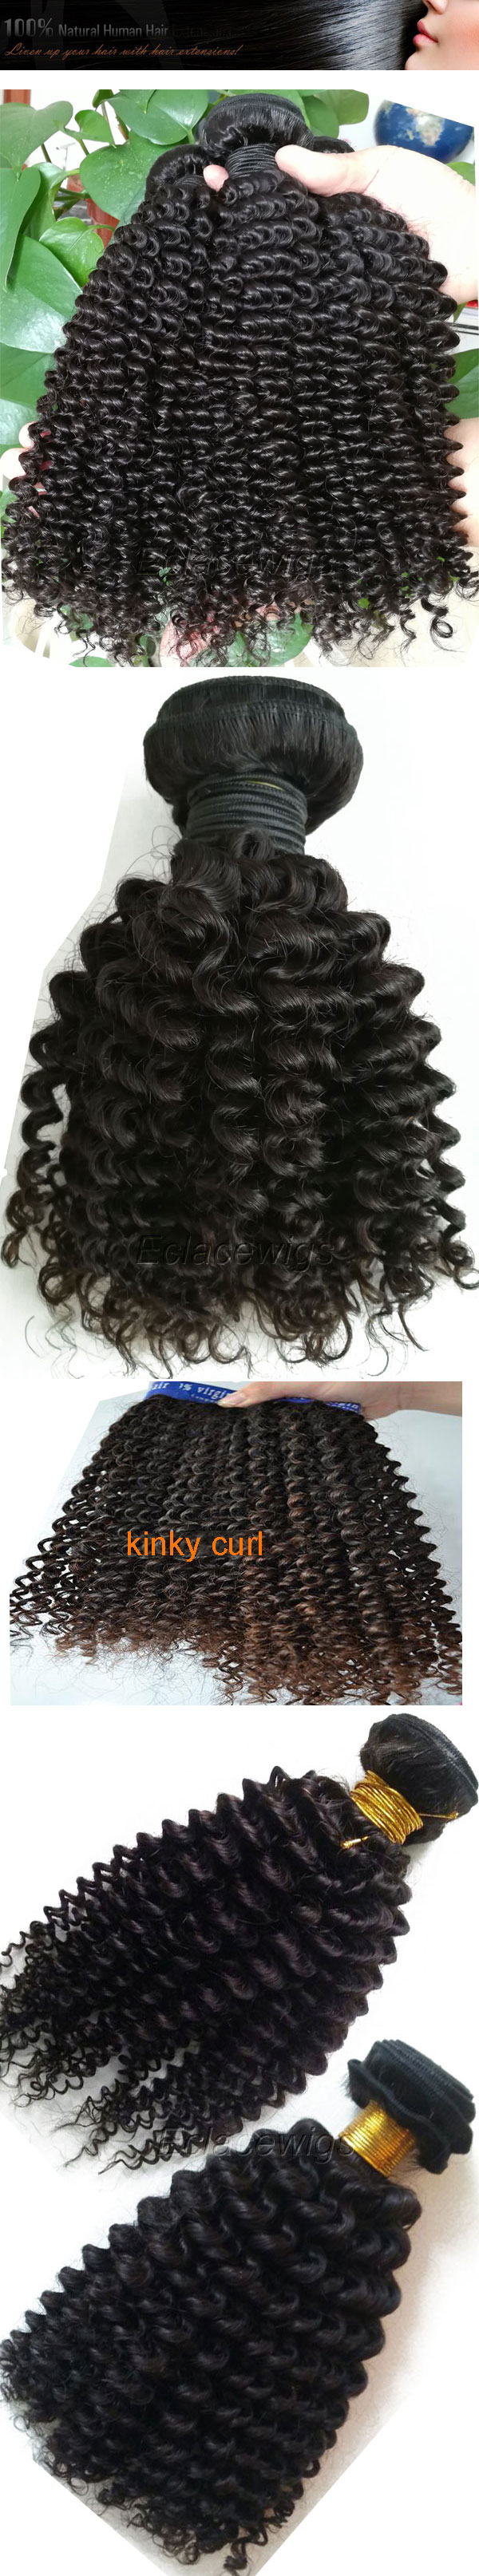 indian human hair weaves